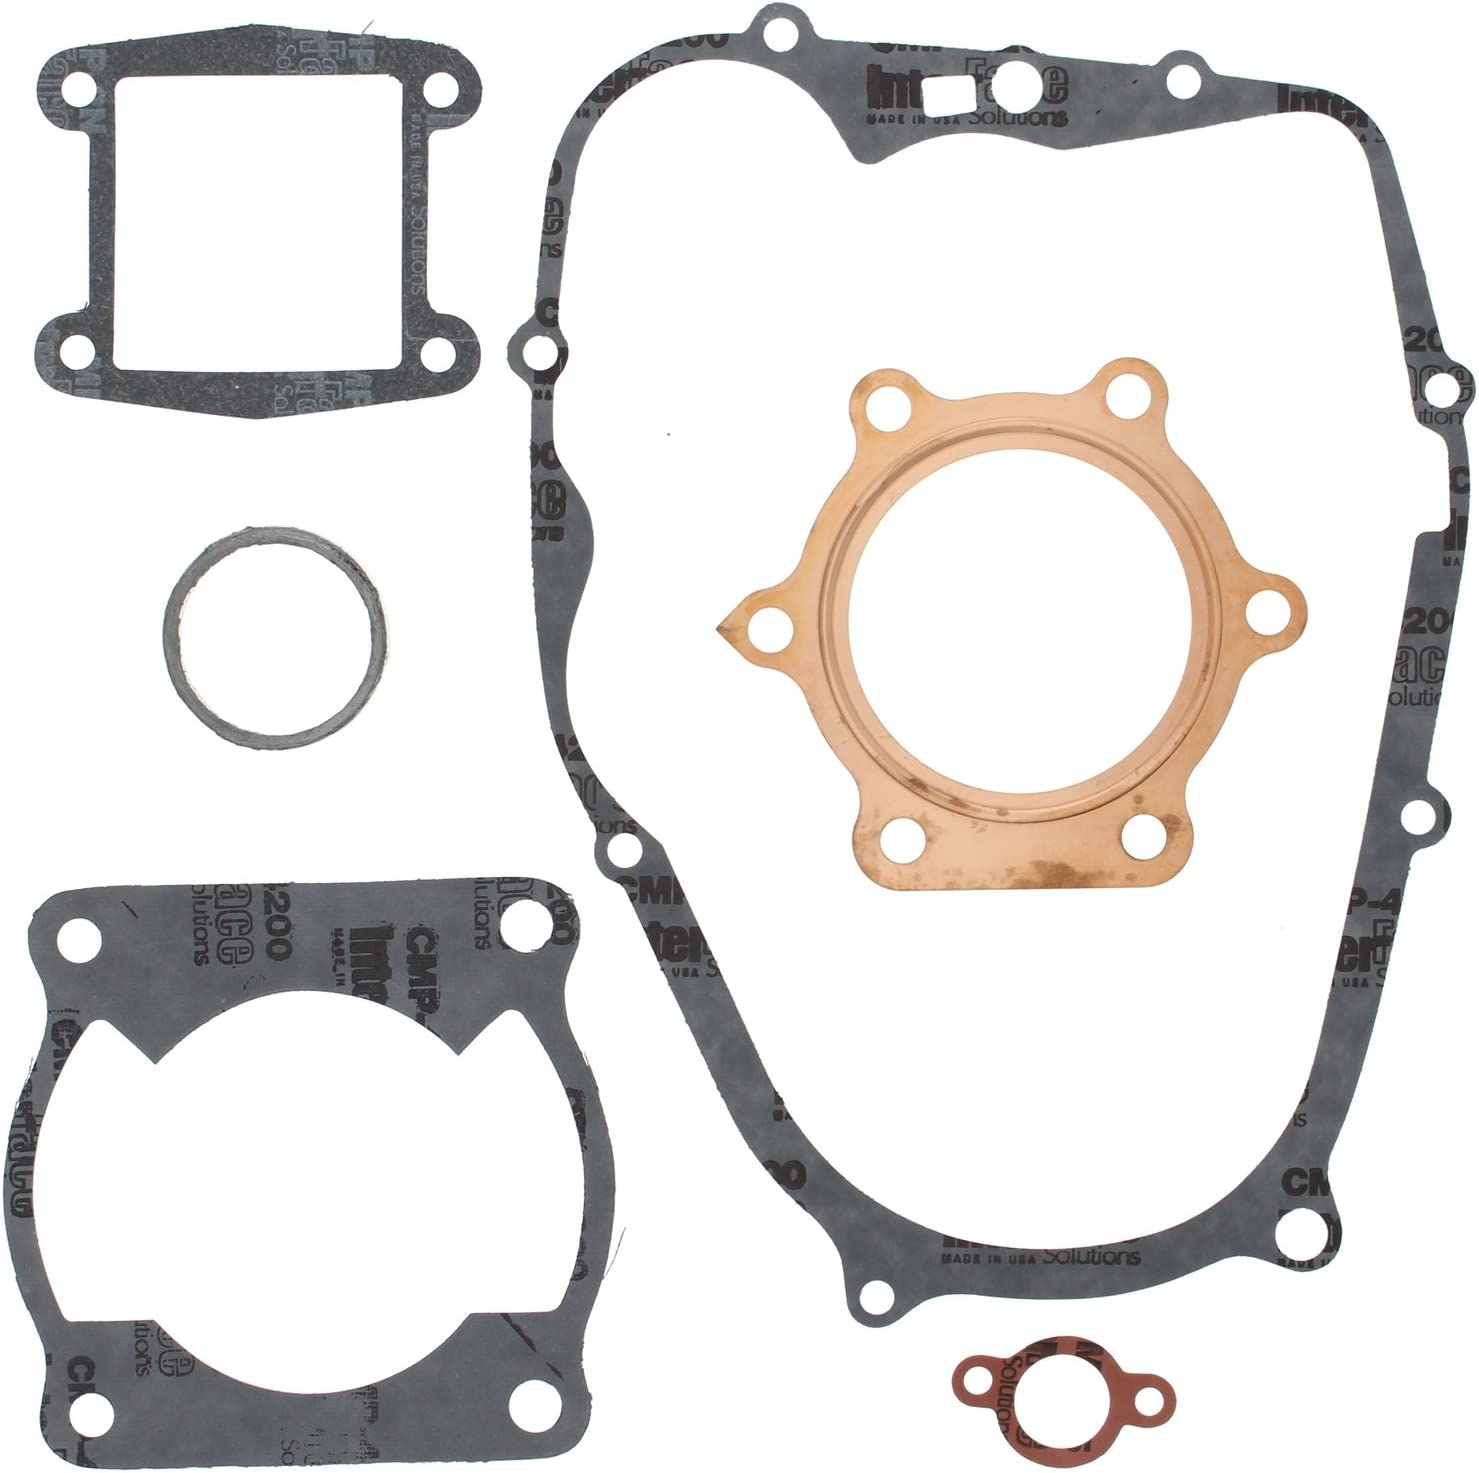 DB Electrical 808831 Complete Gasket Kit Compatible with//Replacement for Kawasaki KLF400 Bayou 400cc 1993-1999